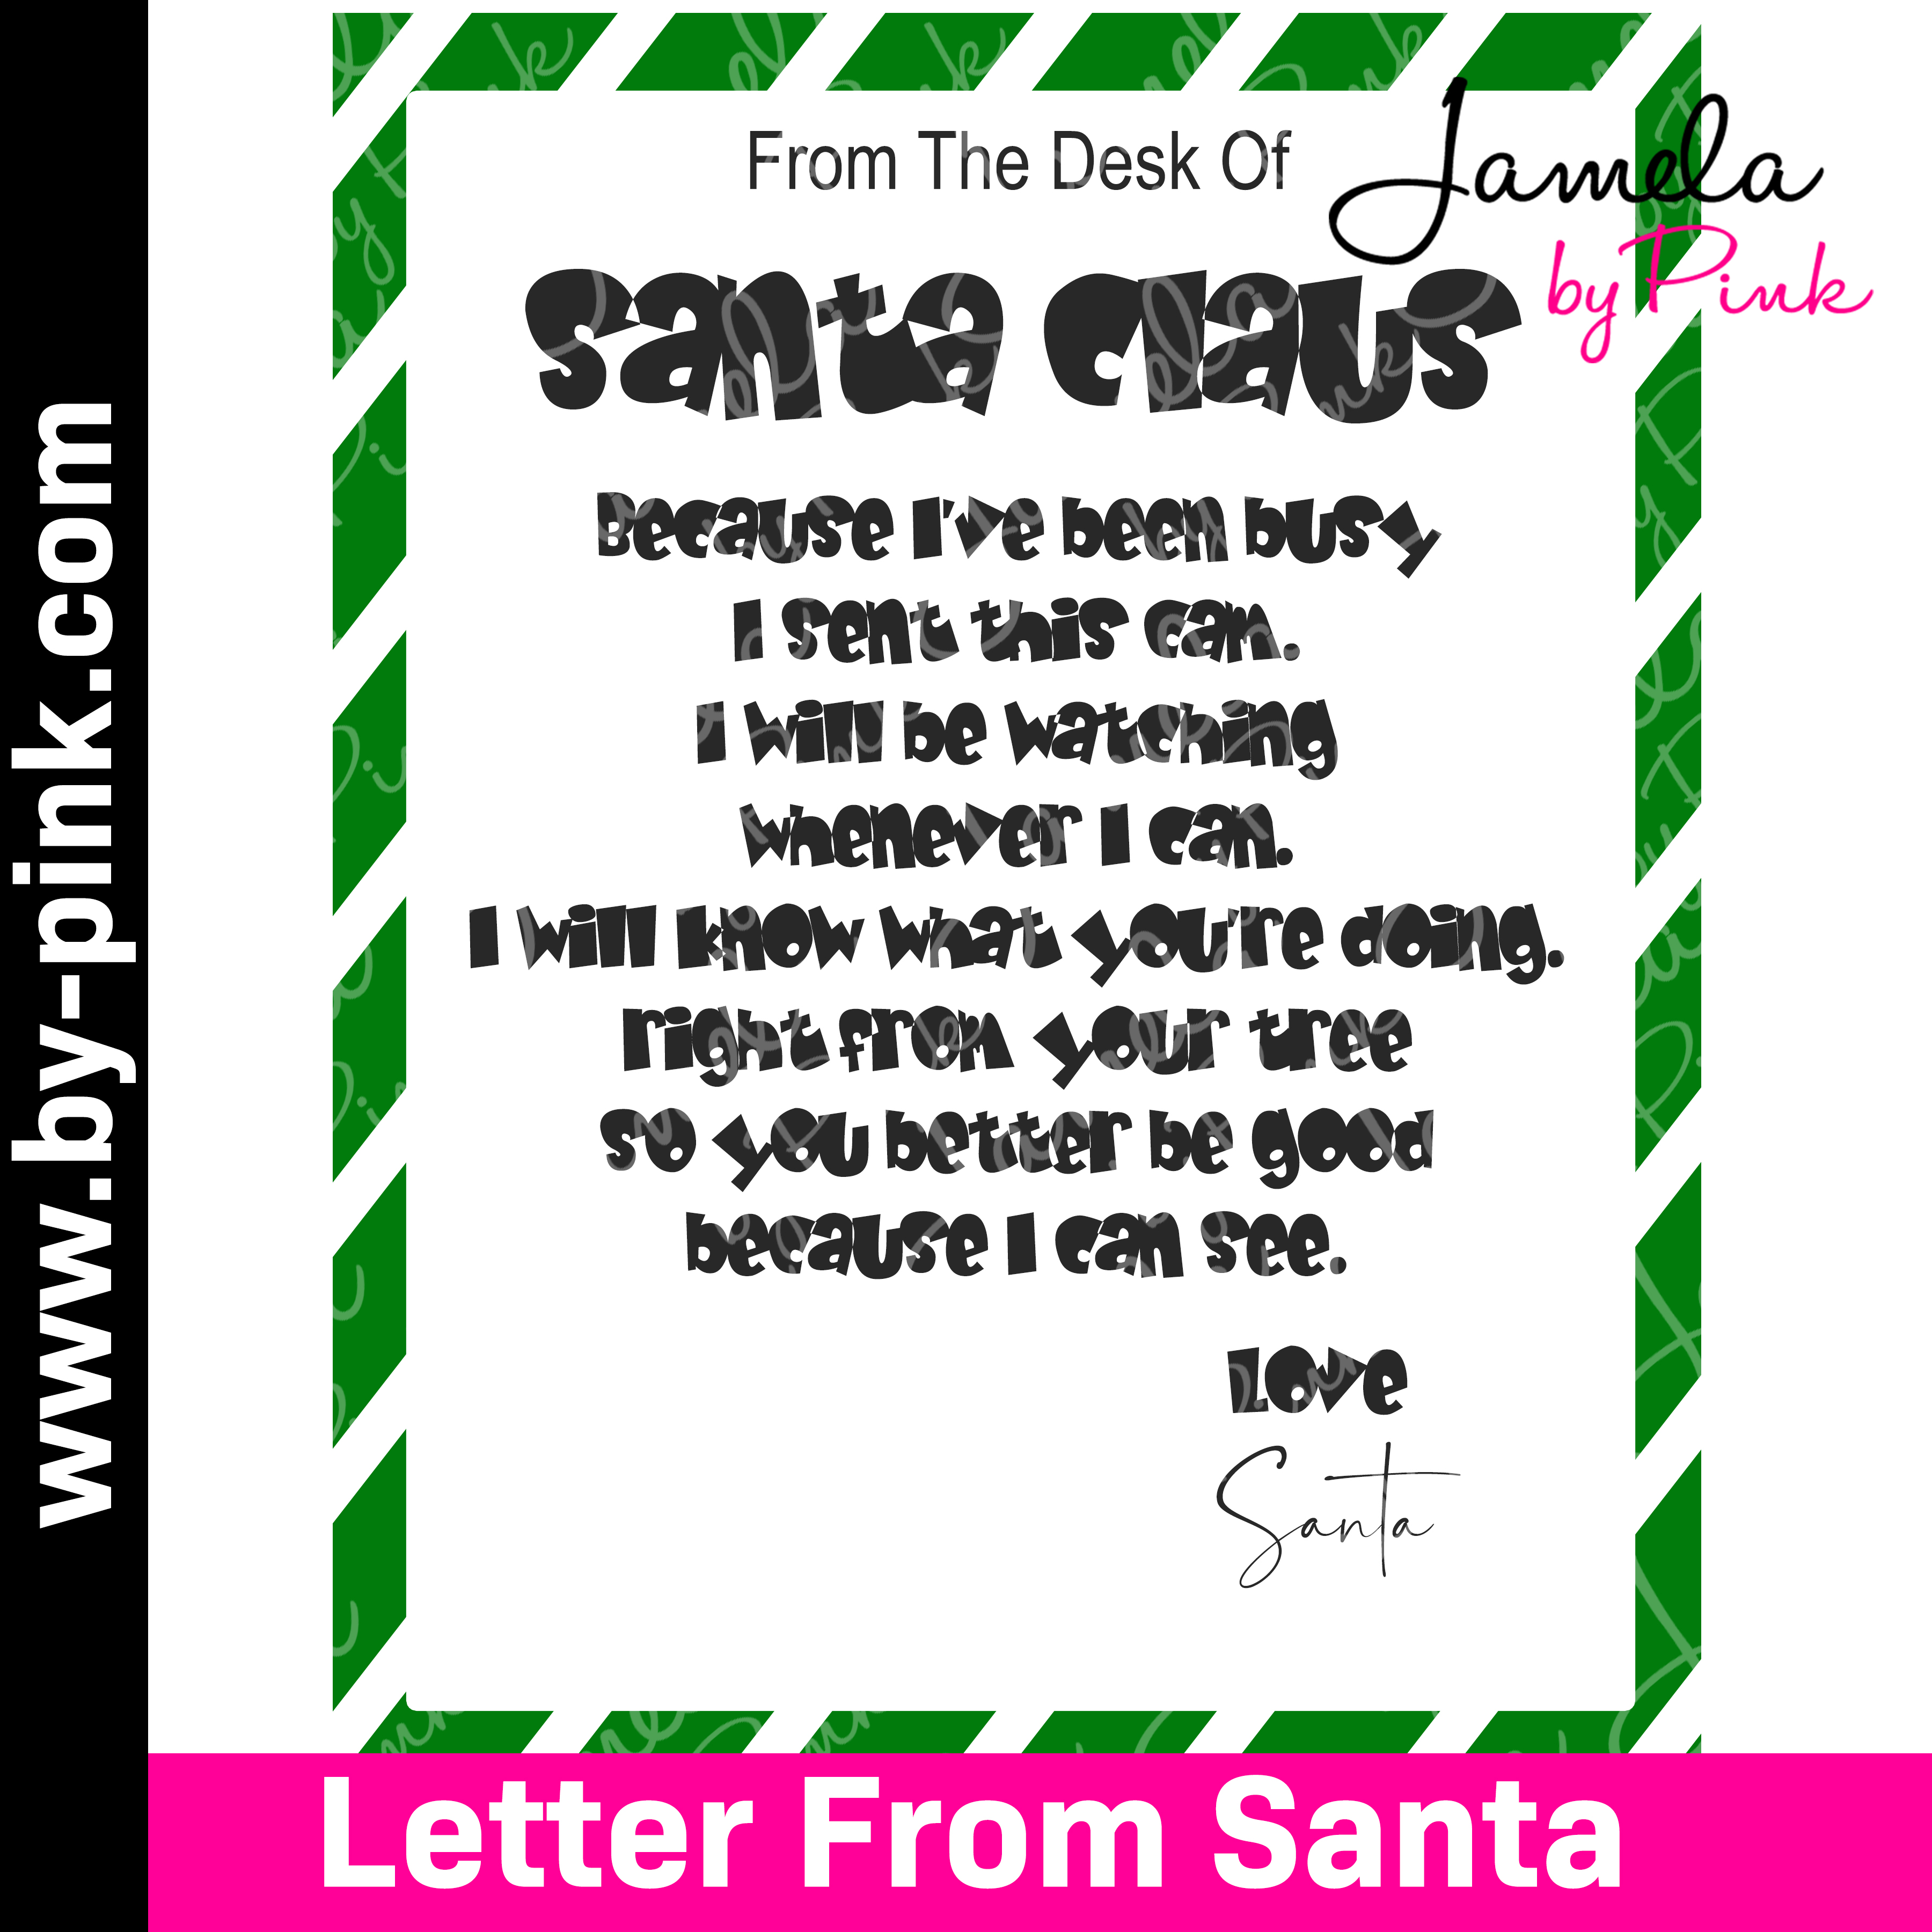 A letter from Santa Clause telling kids that he sent the Santa Cam to watch over them during Santa's busy season.